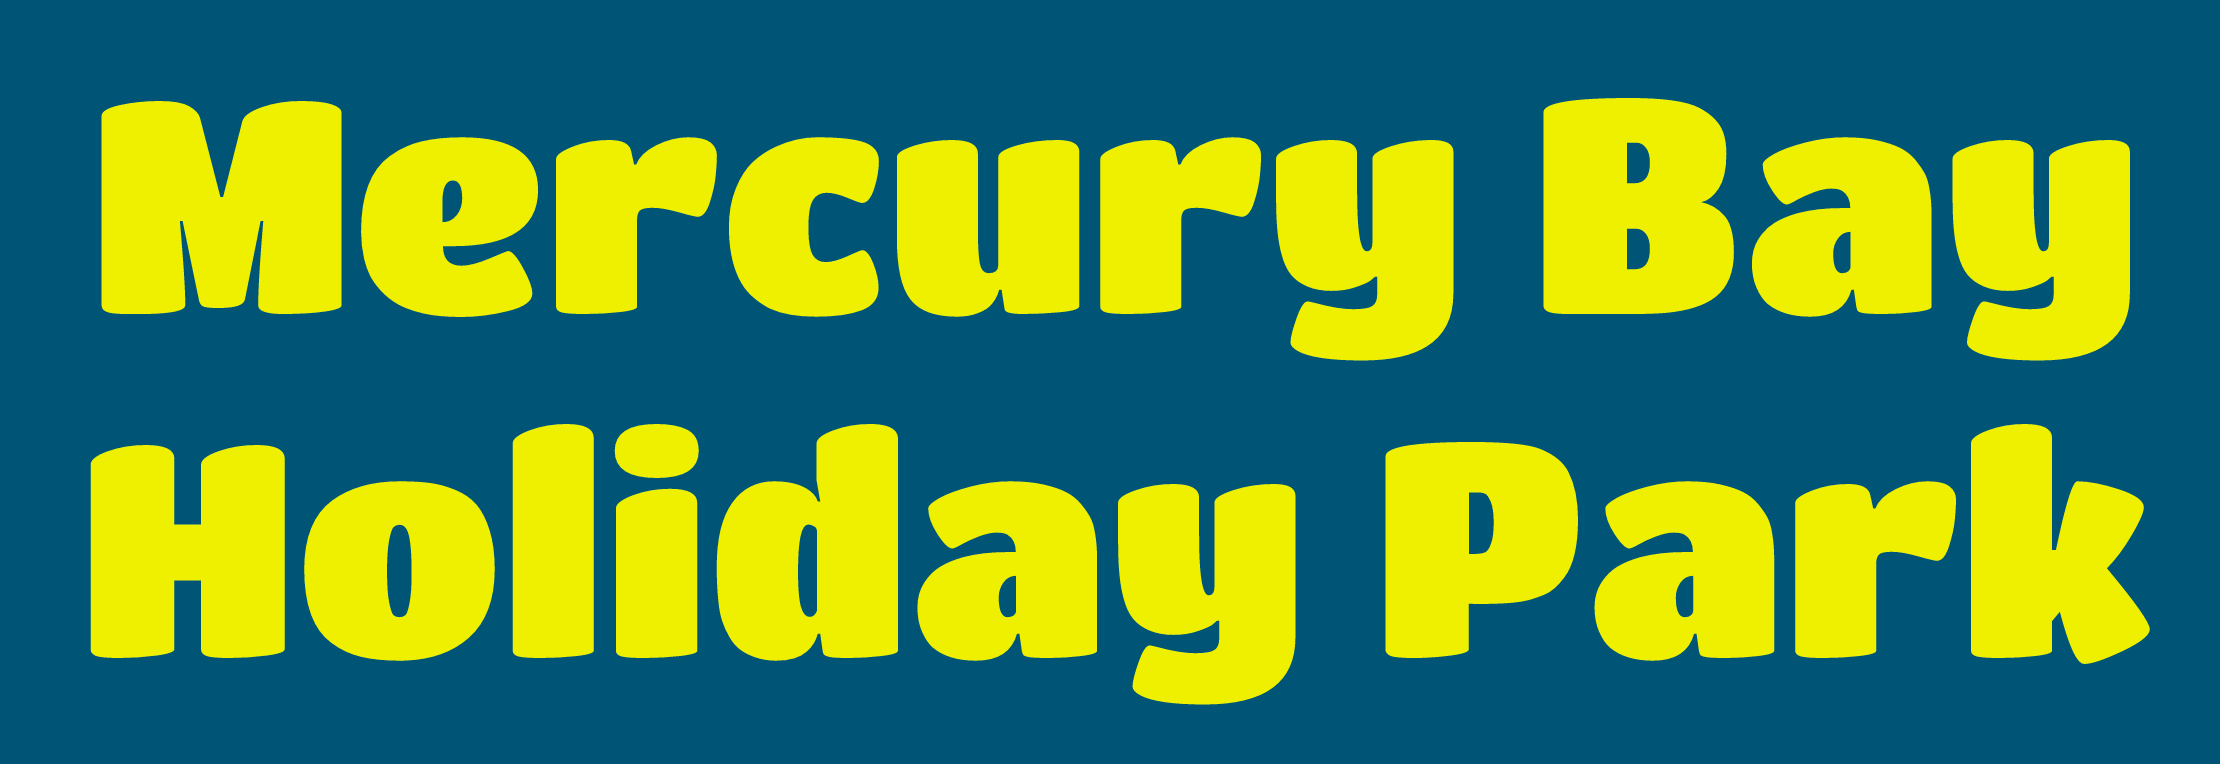 Mercury Bay Holiday Park